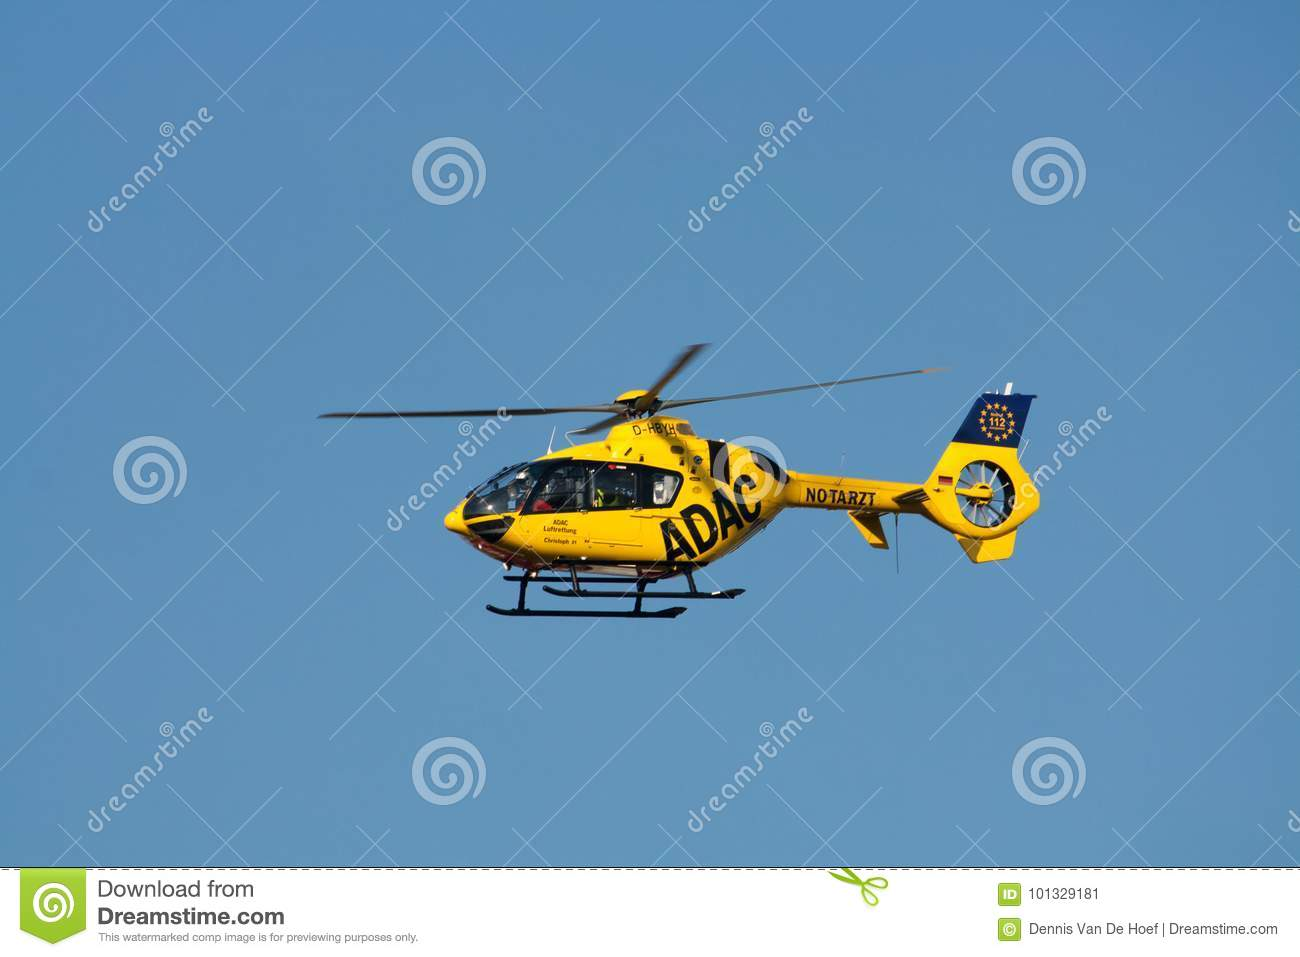 Berlin - 30.09.2017: Rescue helicopter of ADAC, Christoph 31 sea. Yellow, transport.